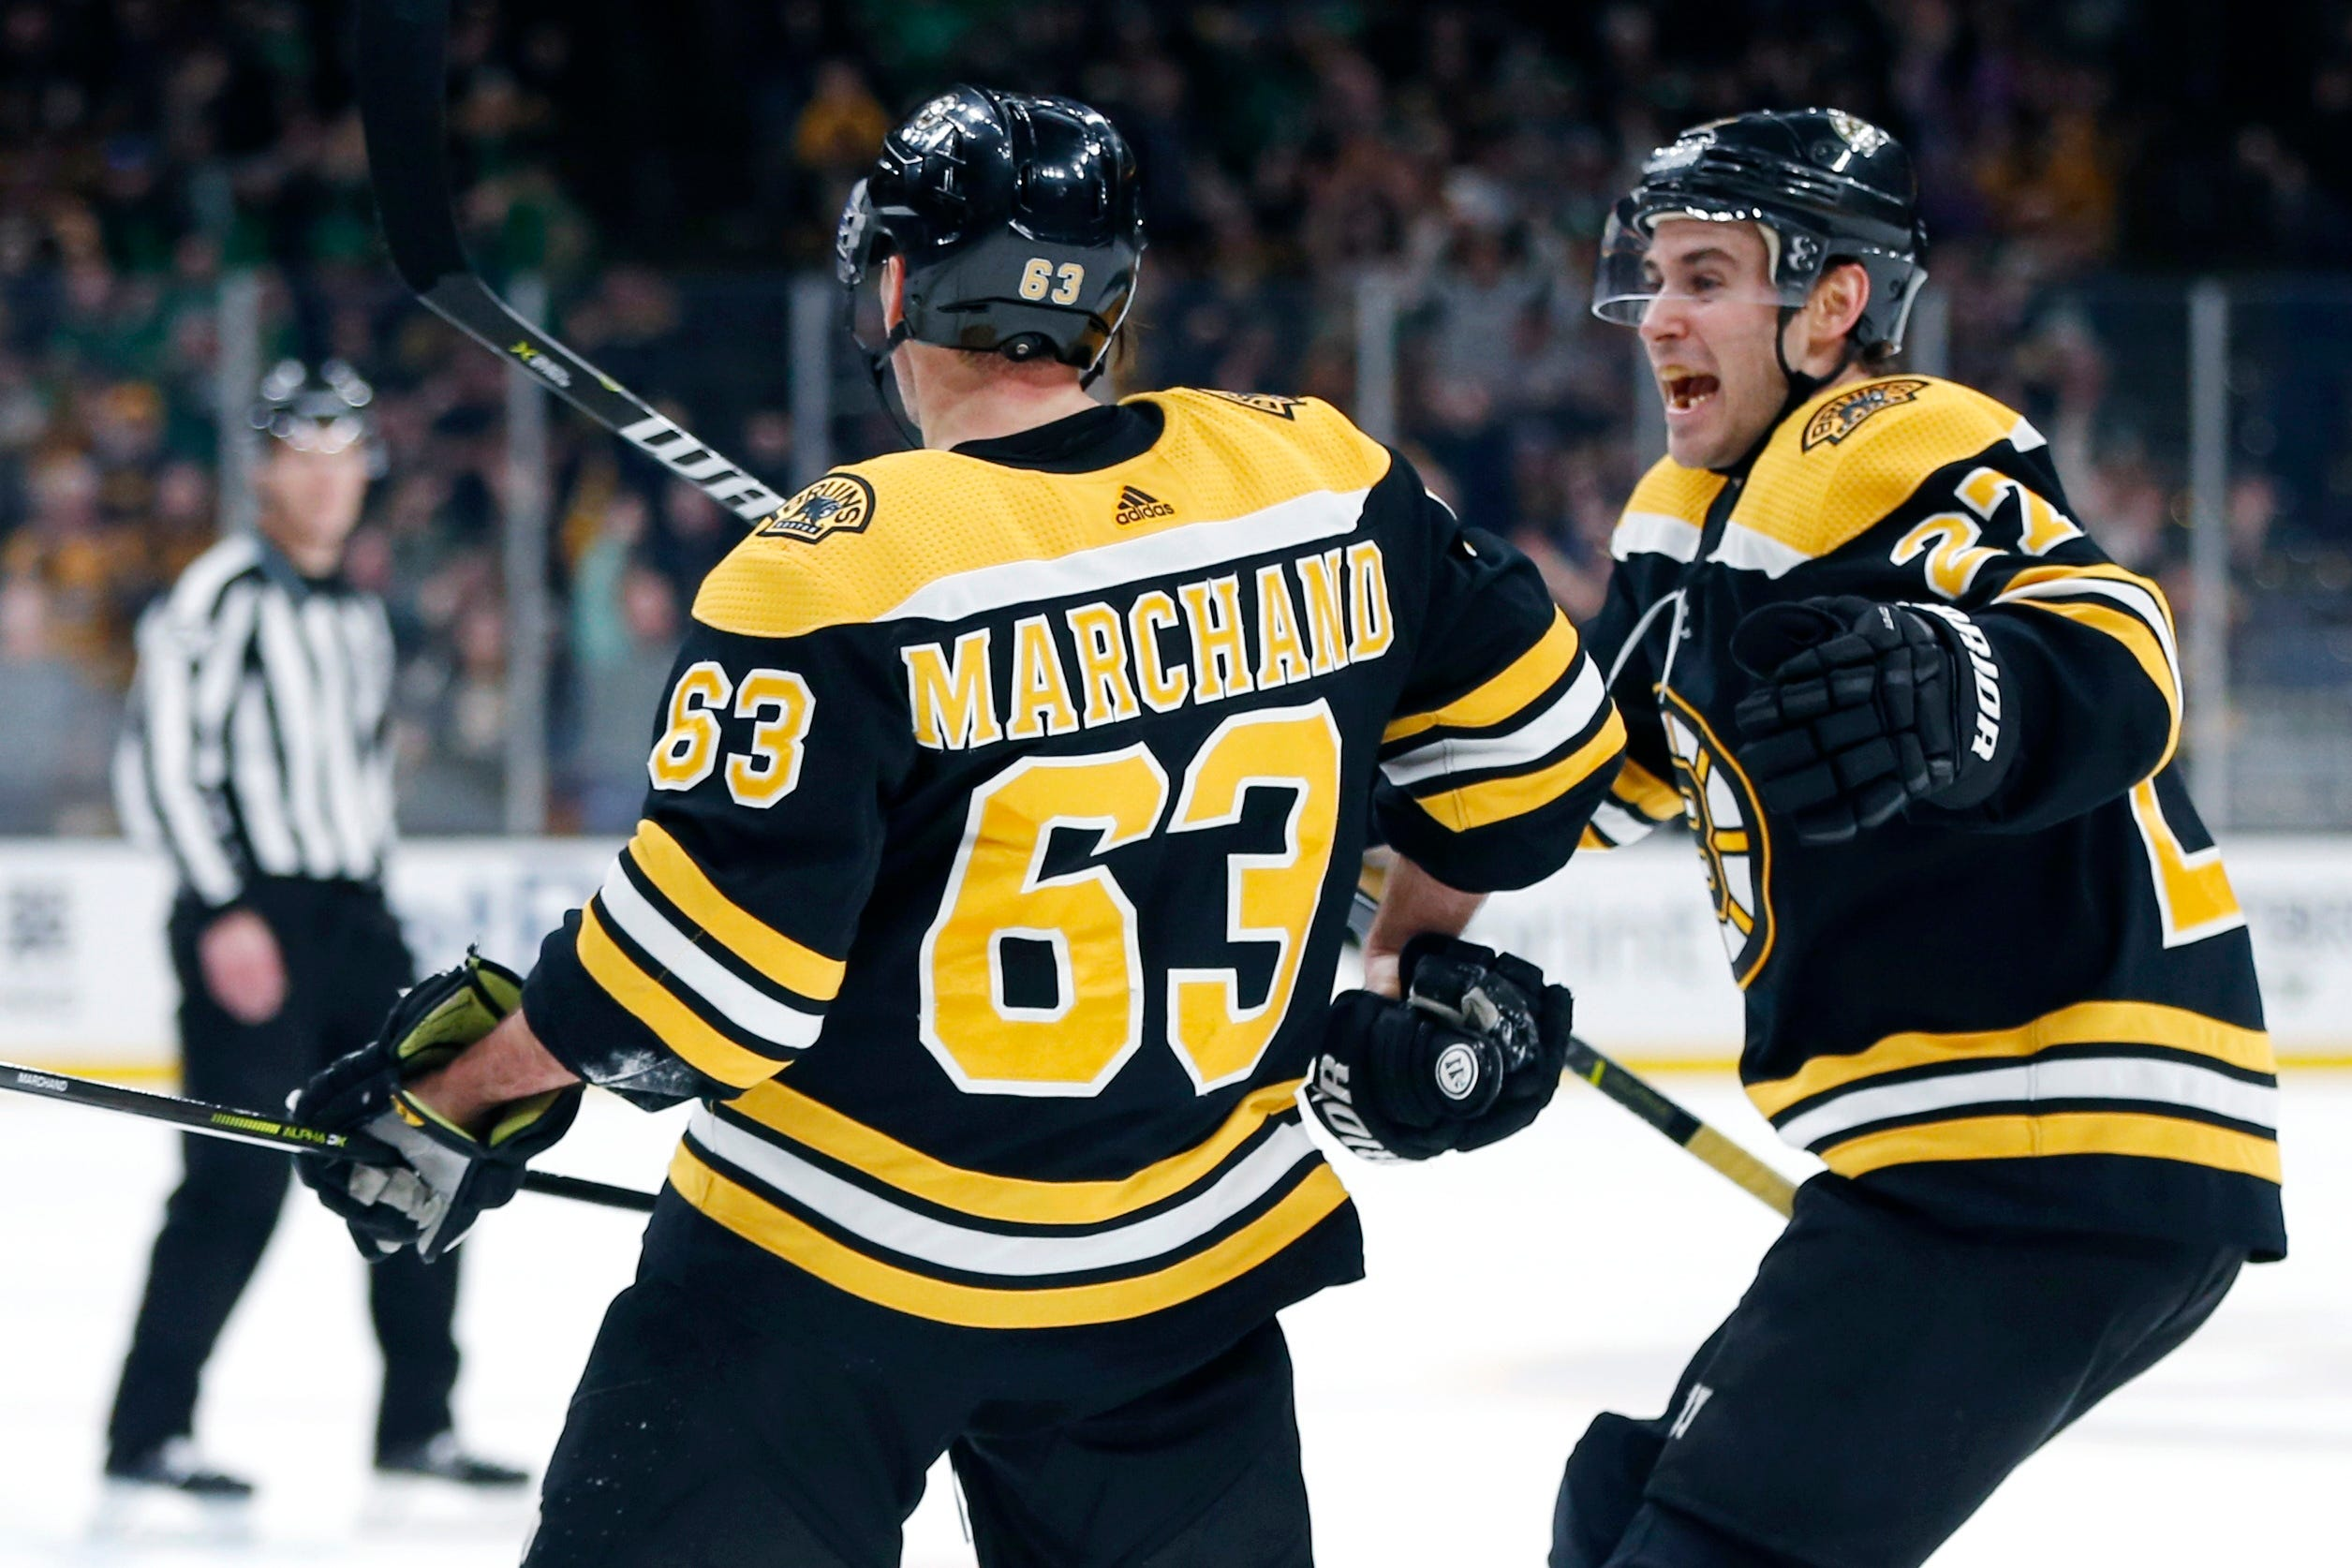 Brad Marchand does it again in OT as Bruins beat Blue Jackets 2-1